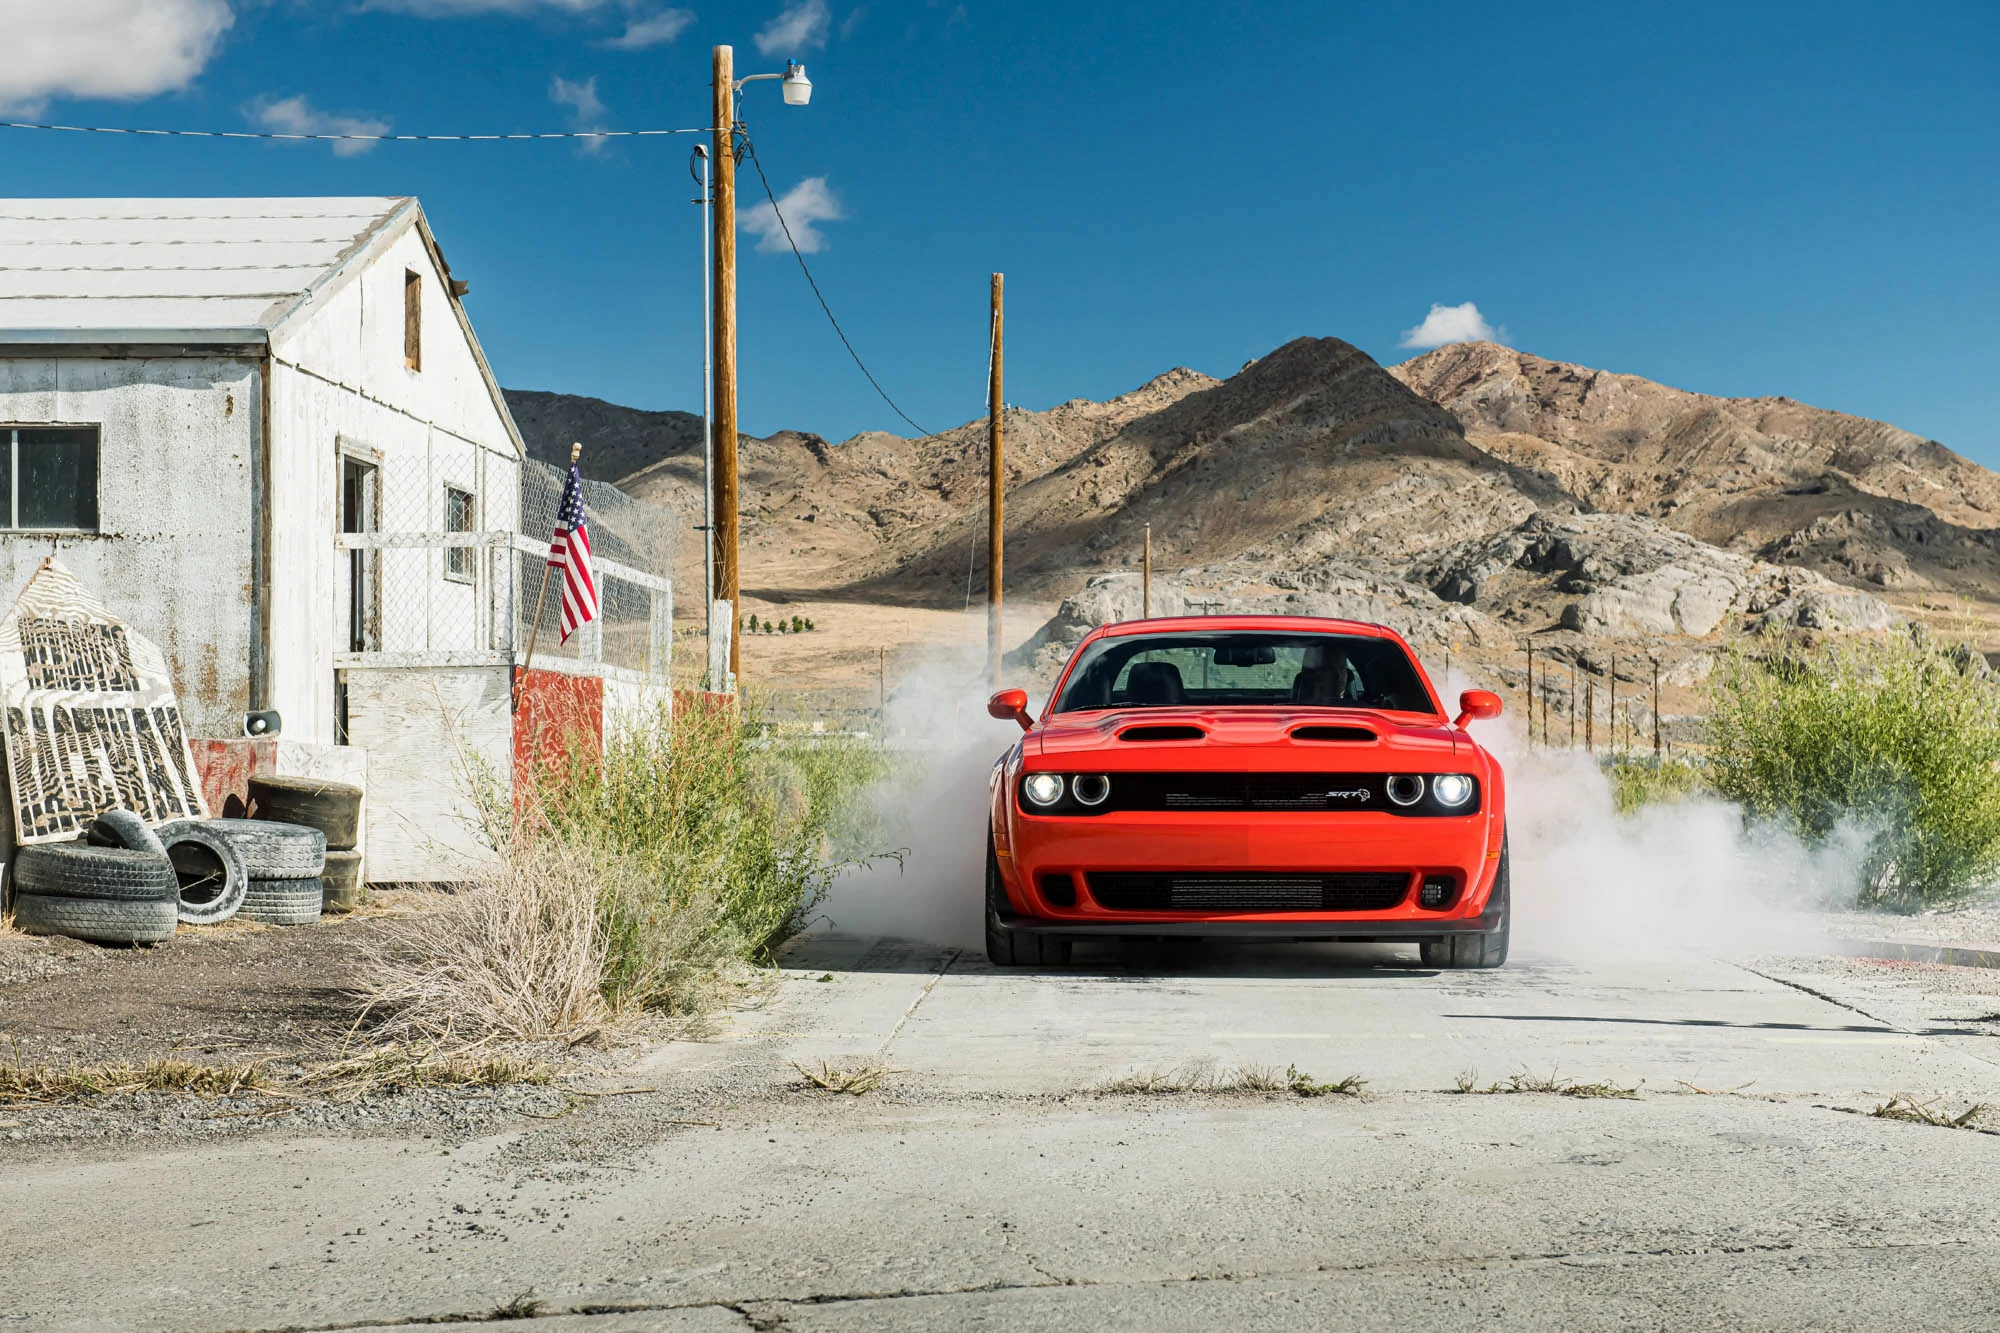 2021 Dodge Challenger Super Stock: It's No Demon, But It's No Slouch, Either